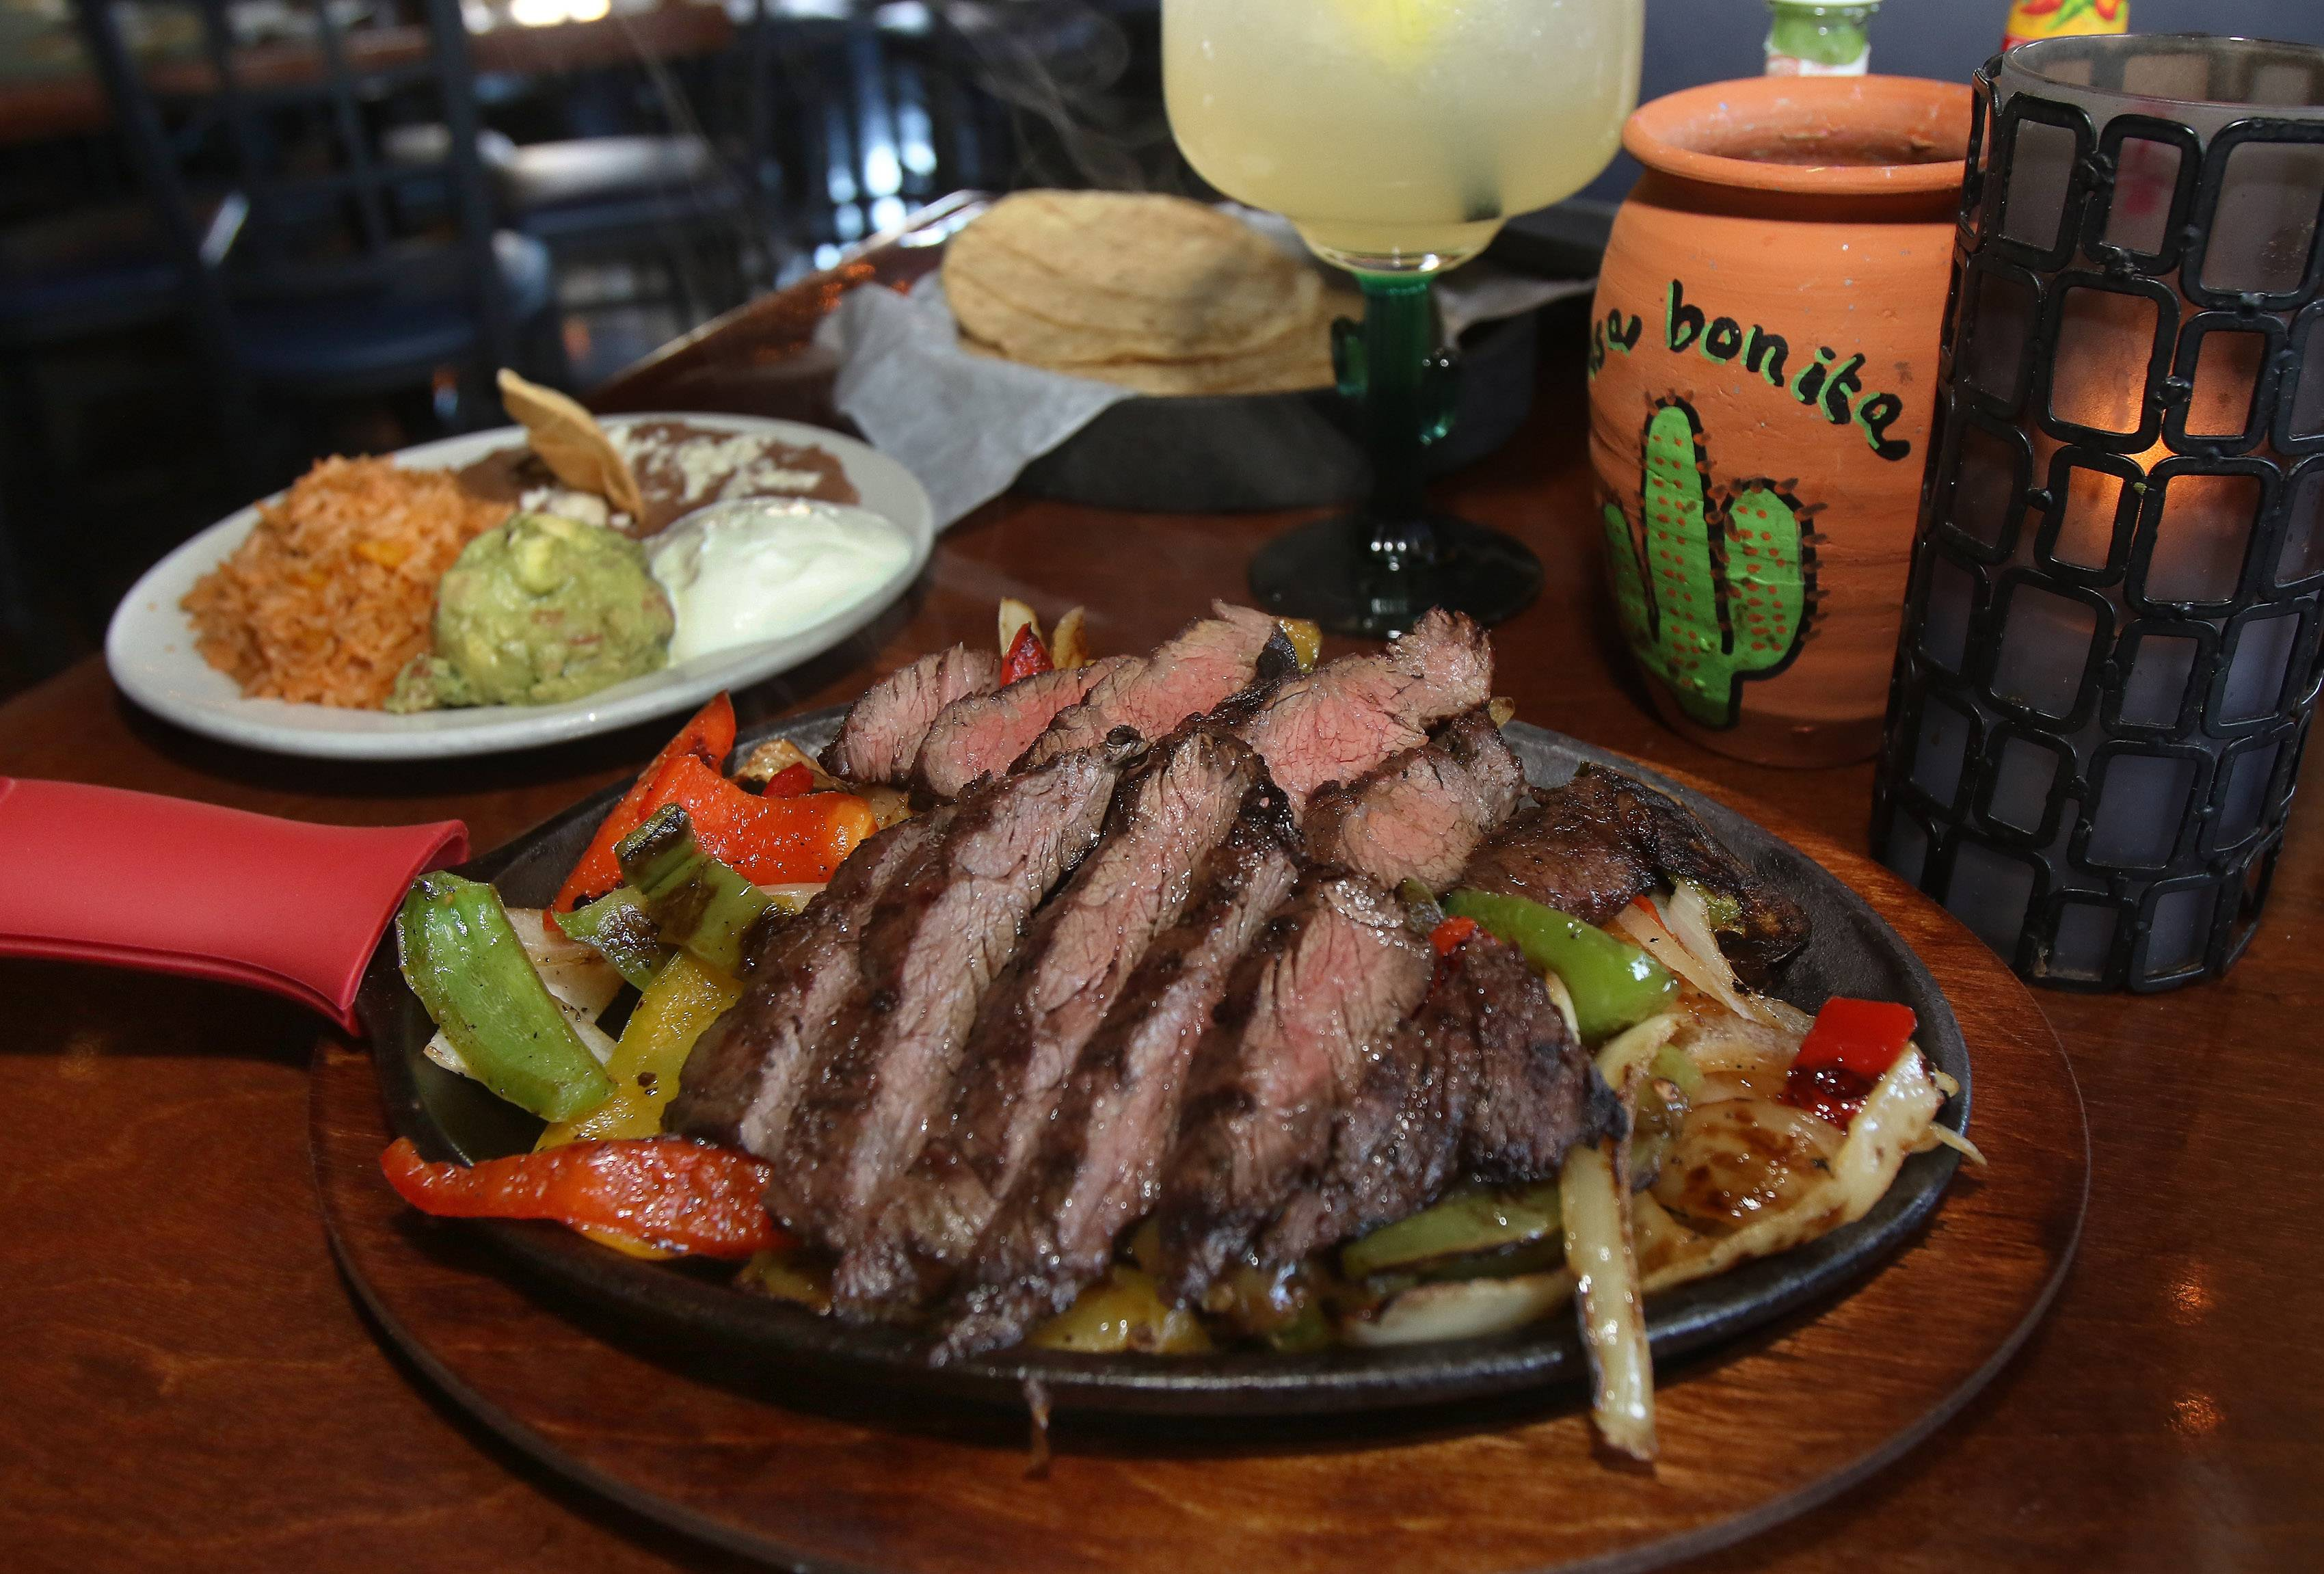 Skirt steak fajitas, with sauteed red and green peppers and onions, arrives on a sizzling platter at Casa Bonita in Libertyville.